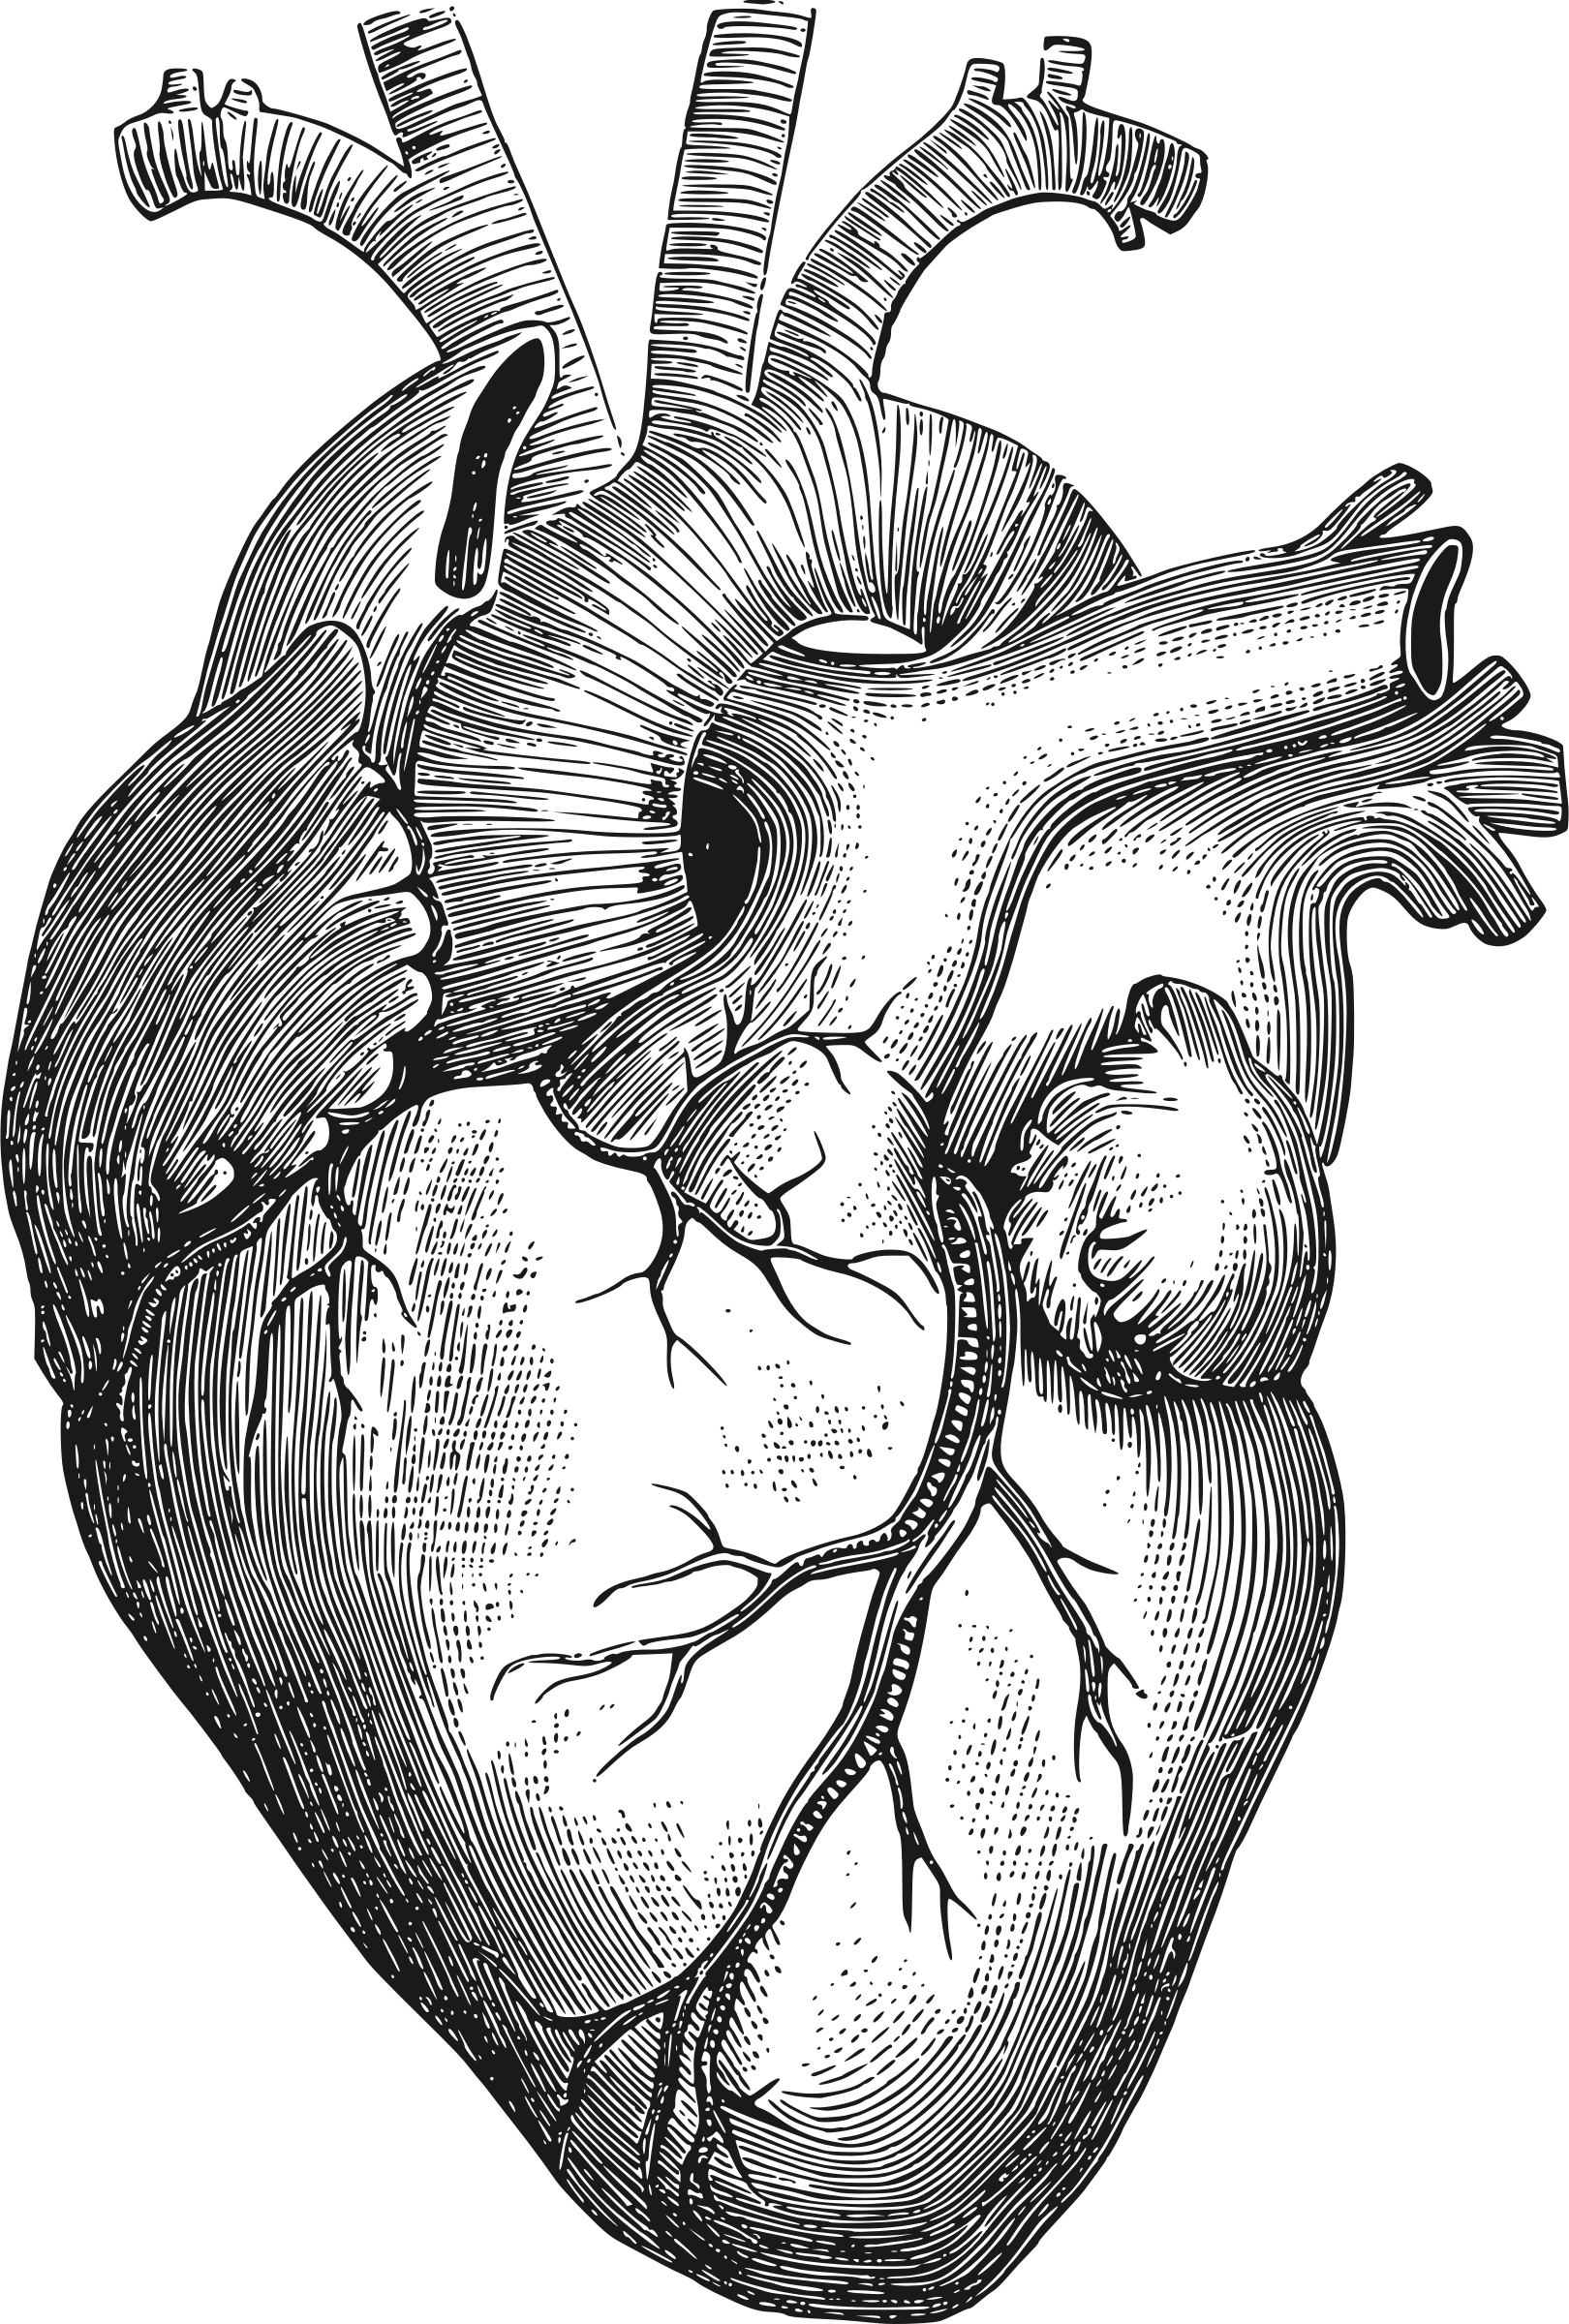 Anatomy Heart Art Png & Free Anatomy Heart Art.png.